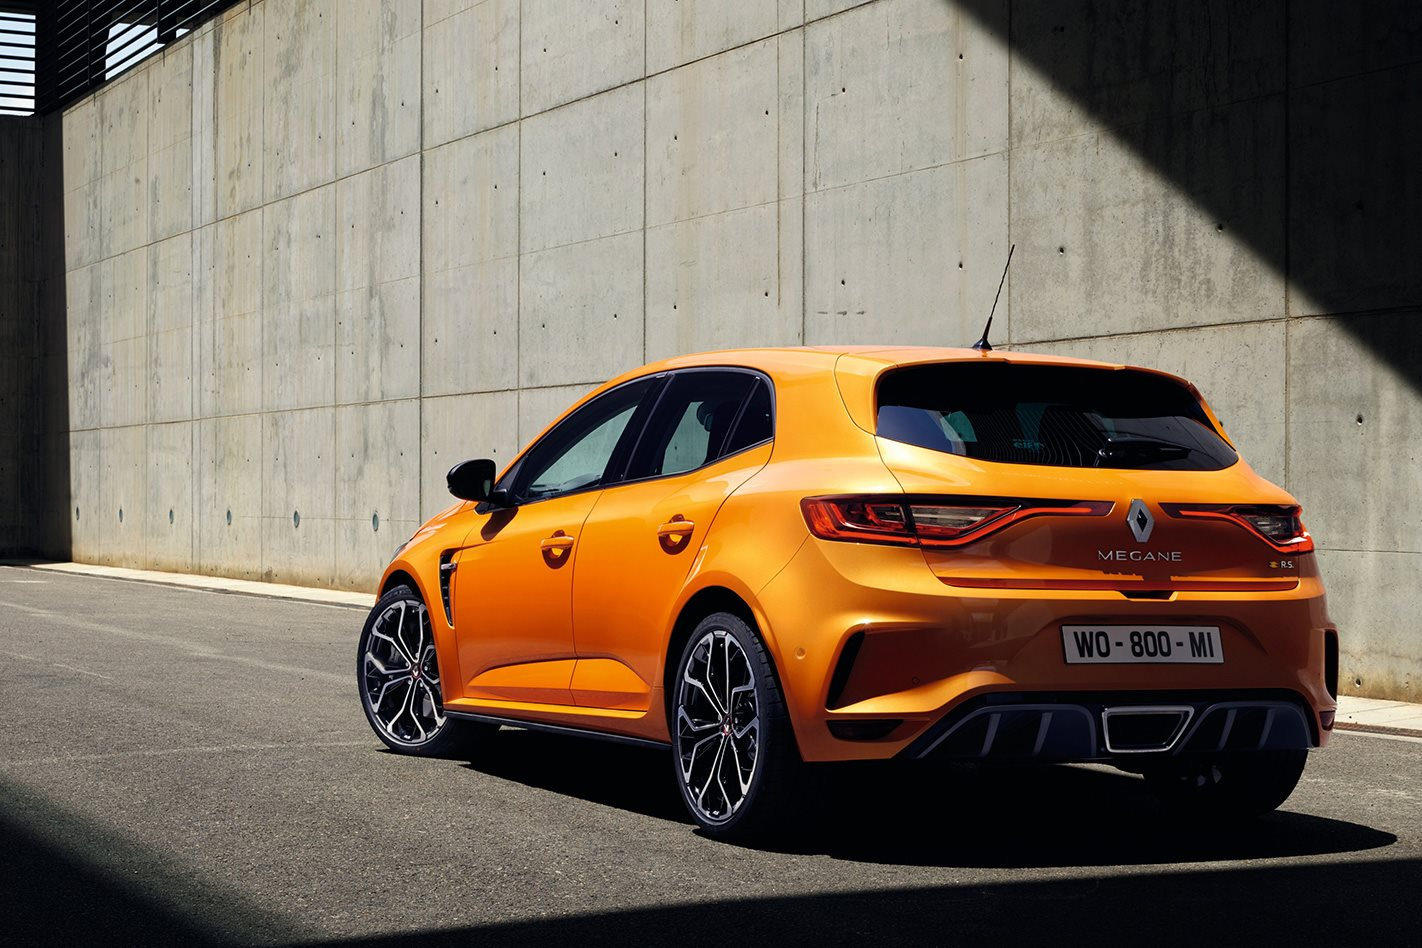 2018 renault megane rs unveiled with 205kw 1 8 litre. Black Bedroom Furniture Sets. Home Design Ideas